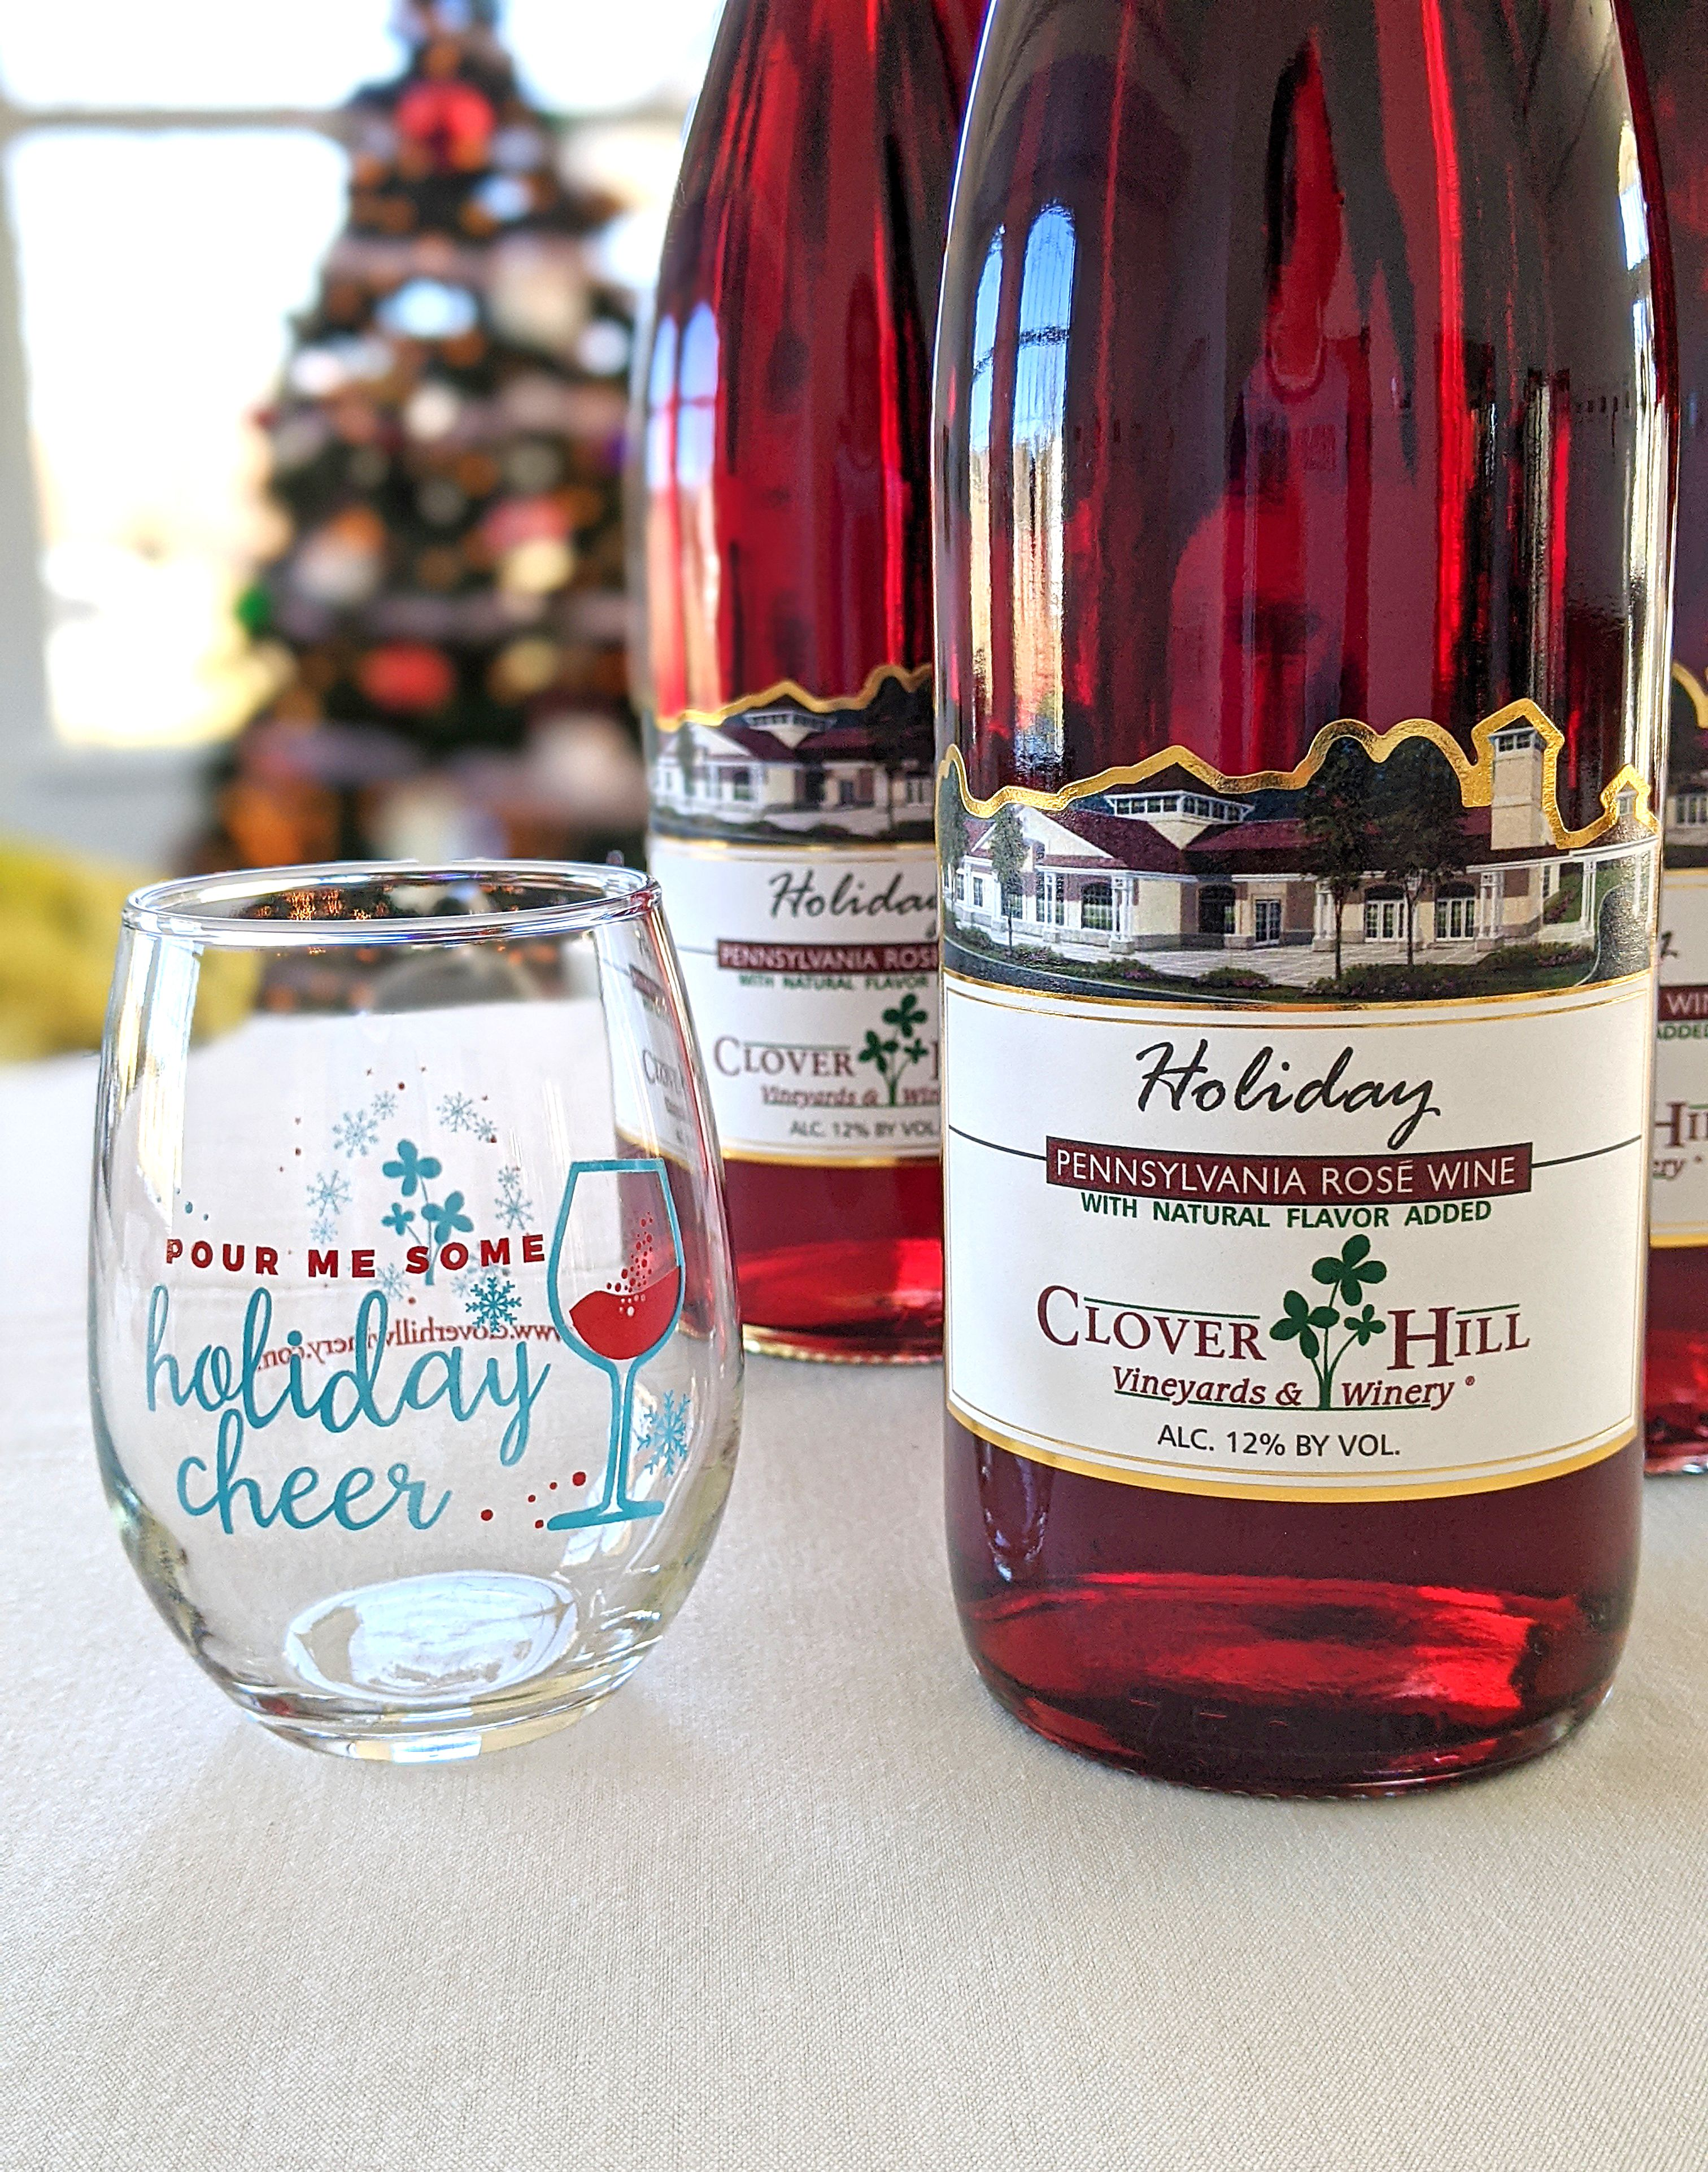 Clover Hill S Hot Toddy With Holiday Hot Toddies Recipe Hot Toddy Holiday Wine